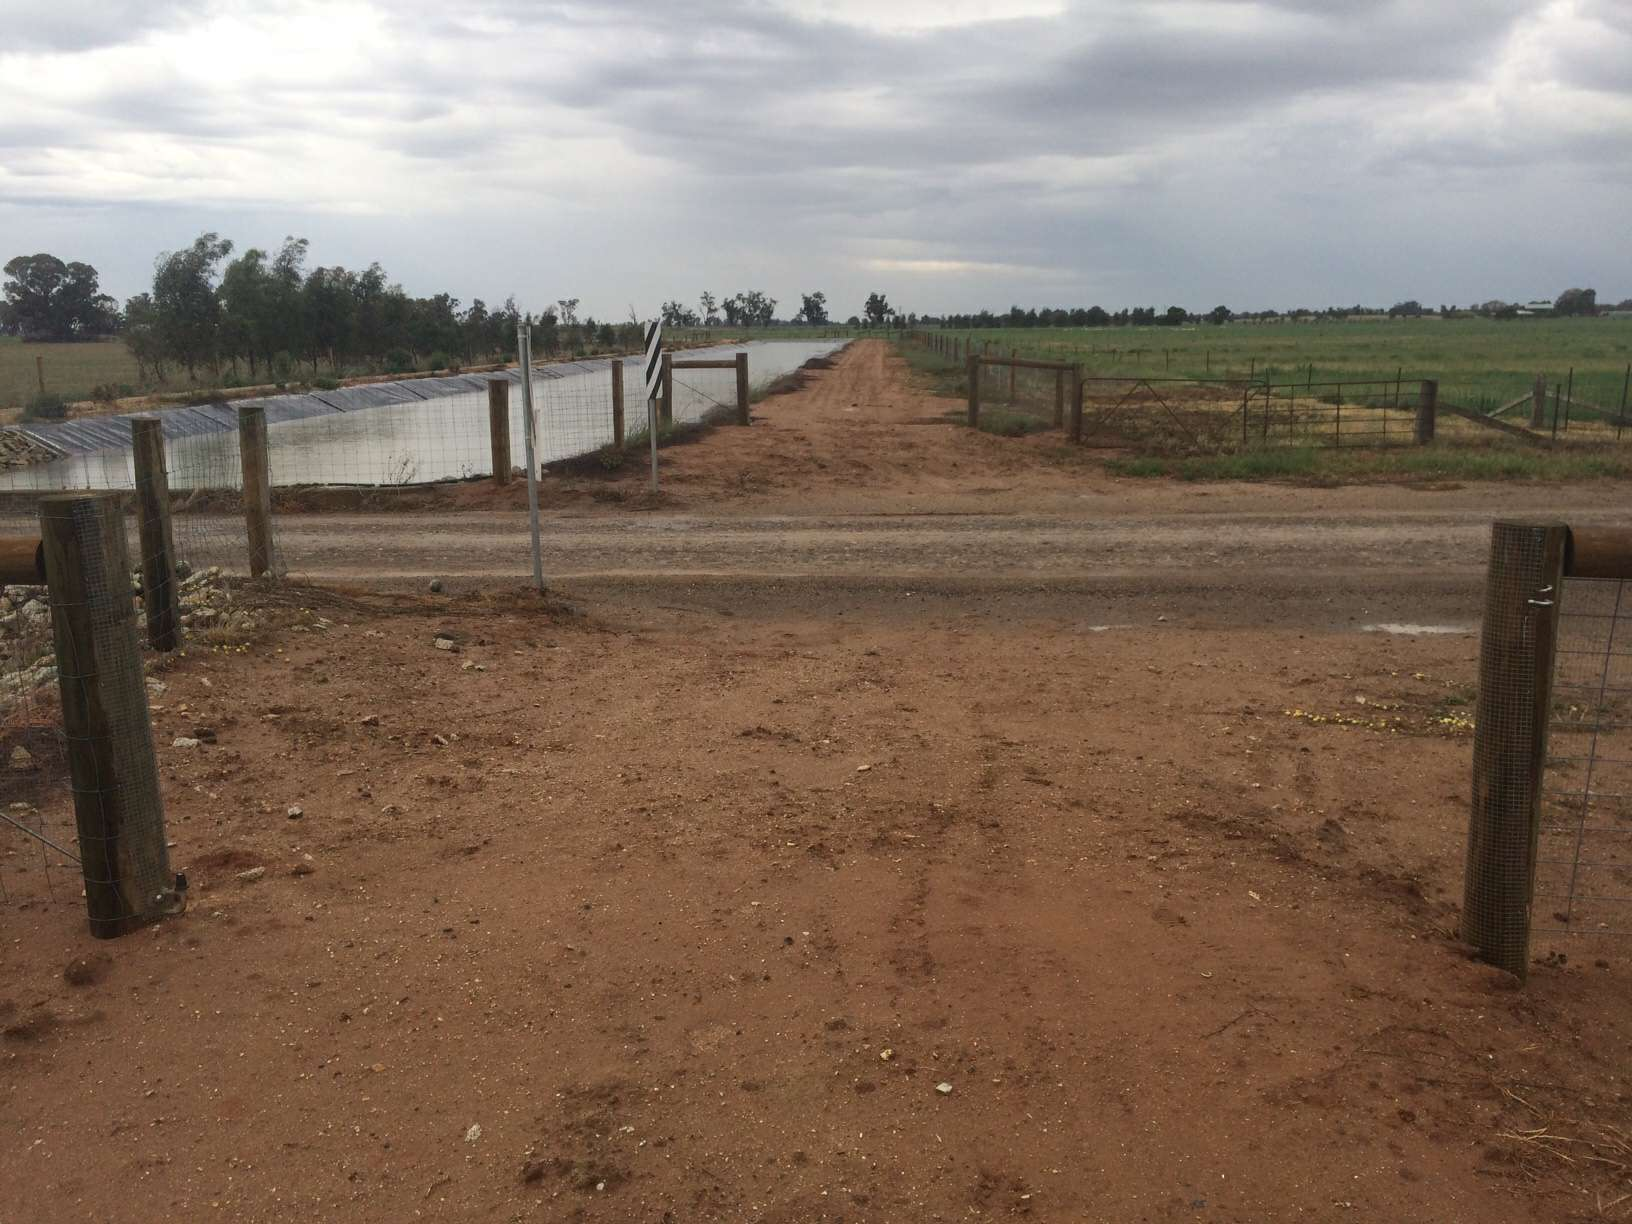 A missing gate off Morris Road in Yalca